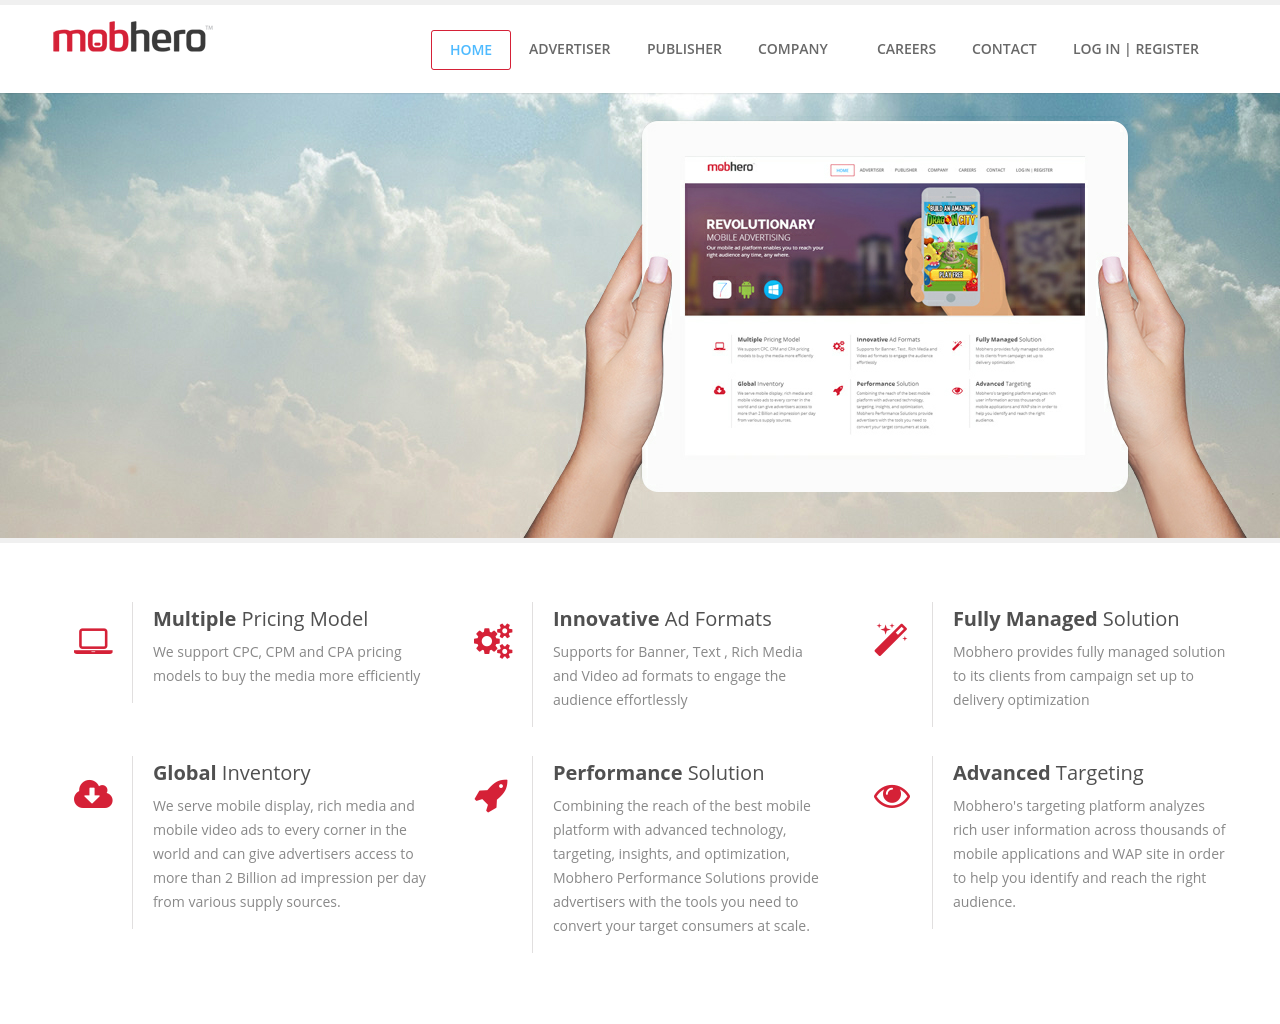 MobHero-Advertising-Reviews-Pricing